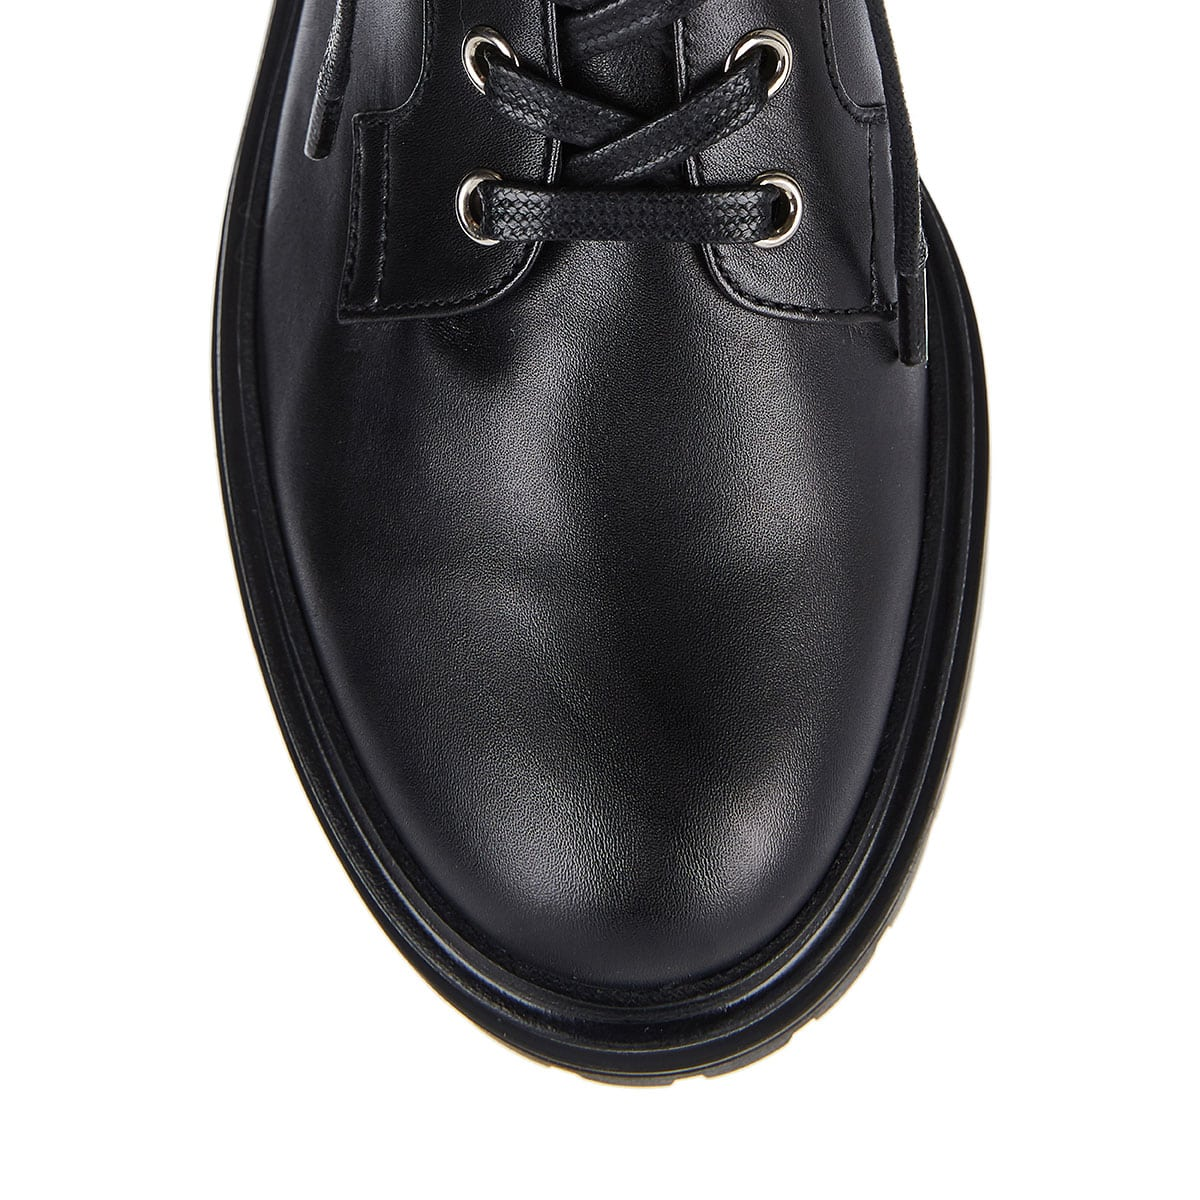 Martis 20 lace-up leather boots